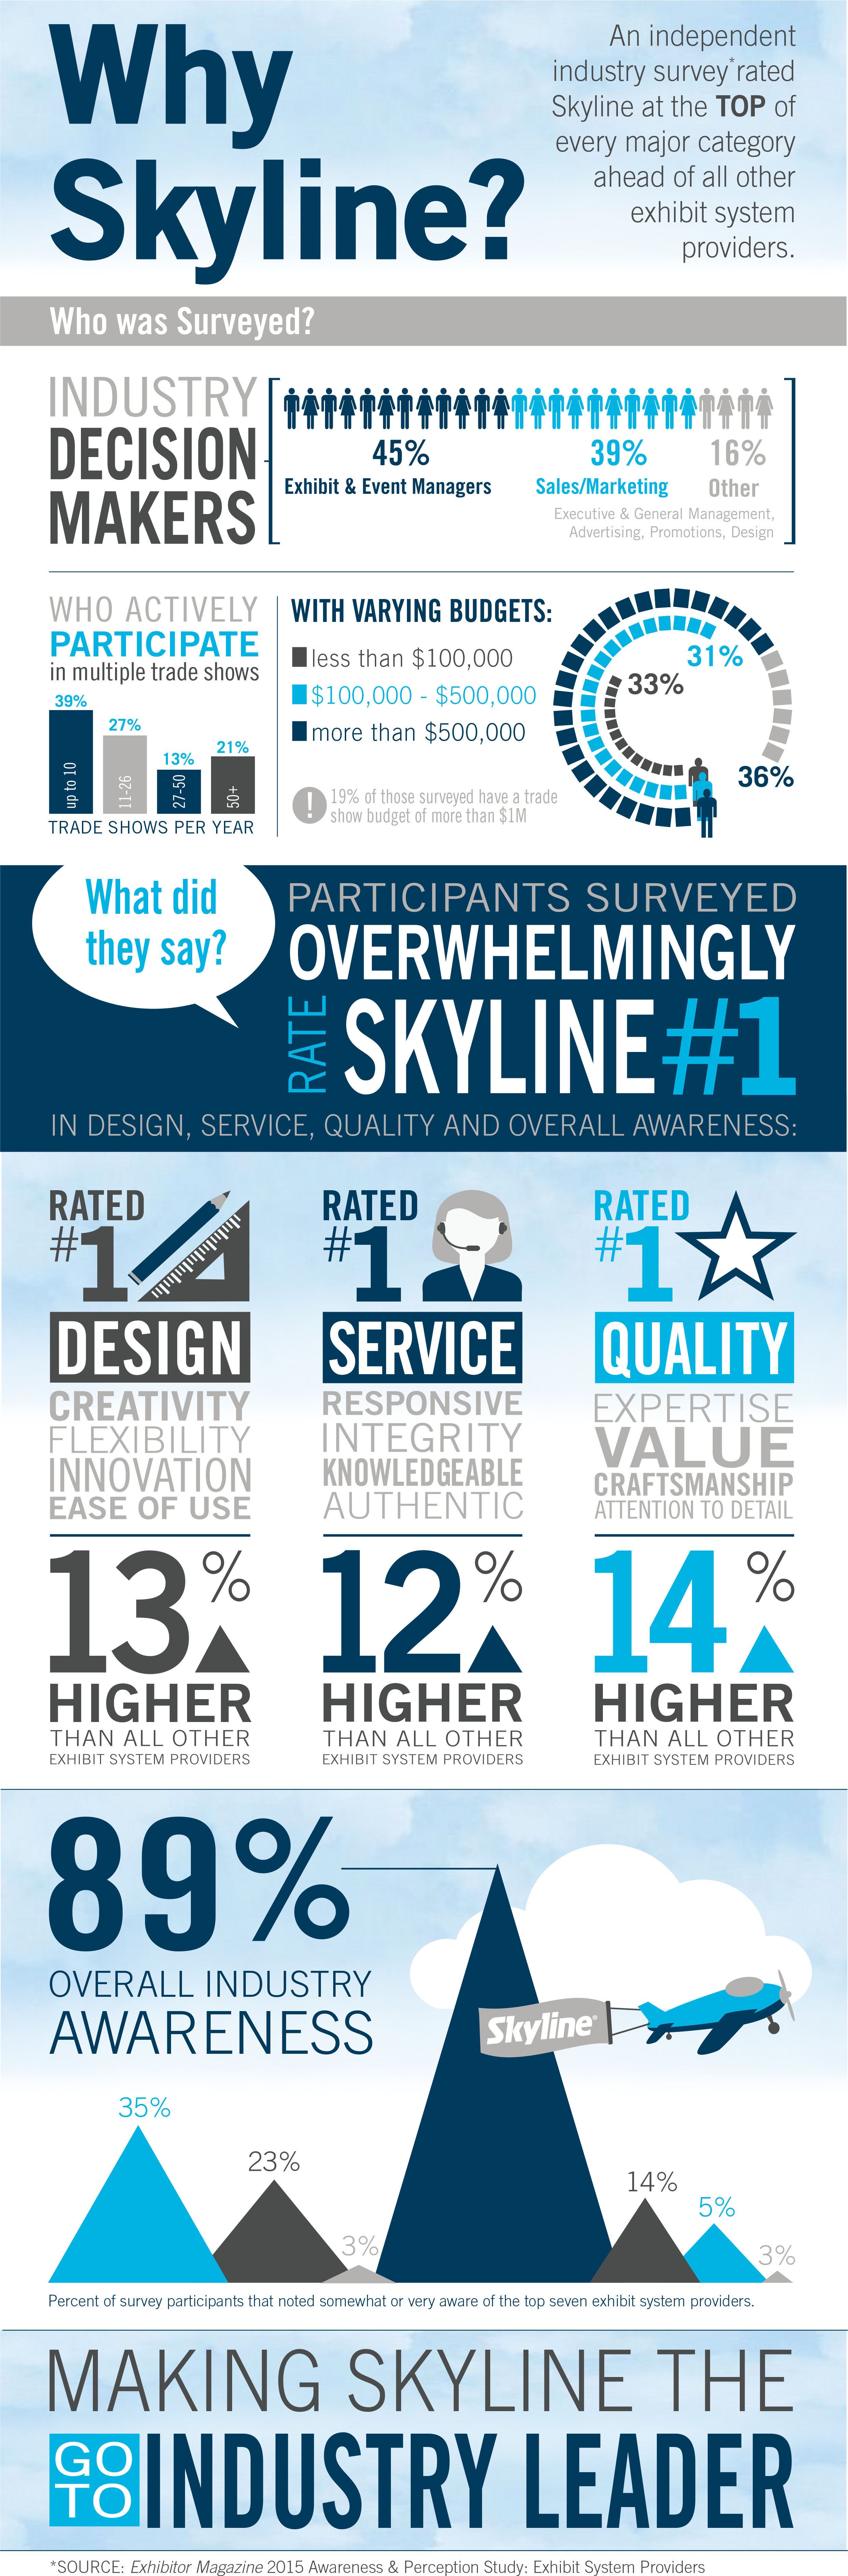 Why Skyline_POSTER_18x54.5